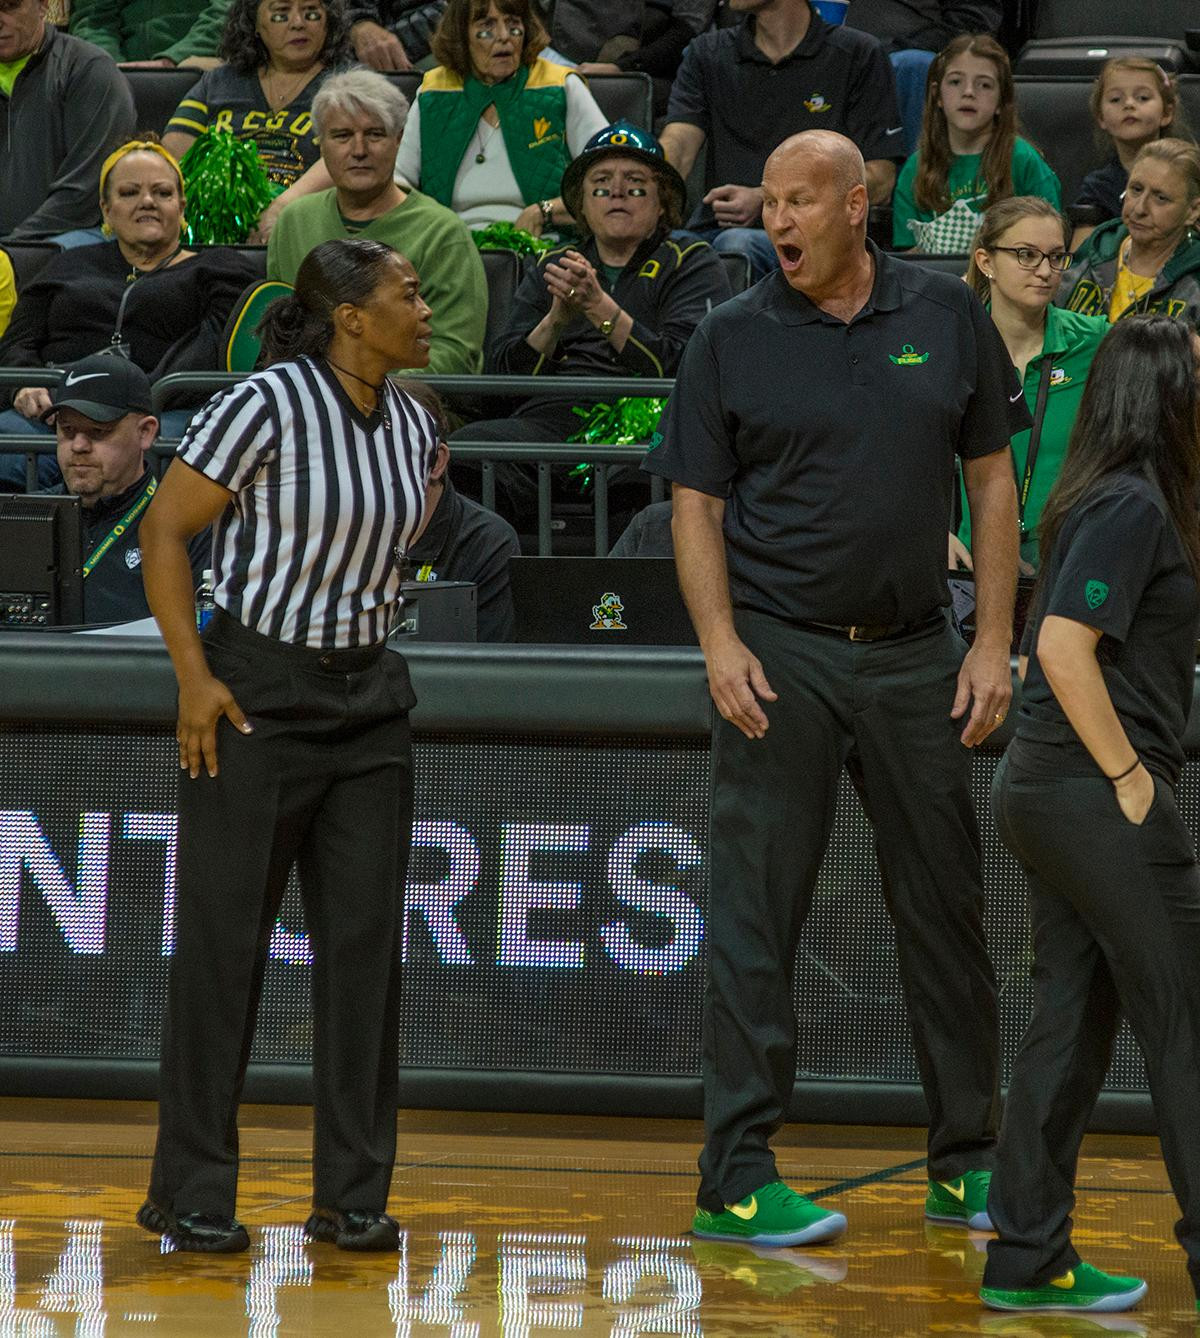 Oregon Ducks Head Coach Kelly Graves voices his displeasure with a ref's call. The Stanford Cardinal defeated the Oregon Ducks 78-65 on Sunday afternoon at Matthew Knight Arena. Stanford is now 10-2 in conference play and with this loss the Ducks drop to 10-2. Leading the Stanford Cardinal was Brittany McPhee with 33 points, Alanna Smith with 14 points, and Kiana Williams with 14 points. For the Ducks Sabrina Ionescu led with 22 points, Ruthy Hebard added 16 points, and Satou Sabally put in 14 points. Photo by Dan Morrison, Oregon News Lab